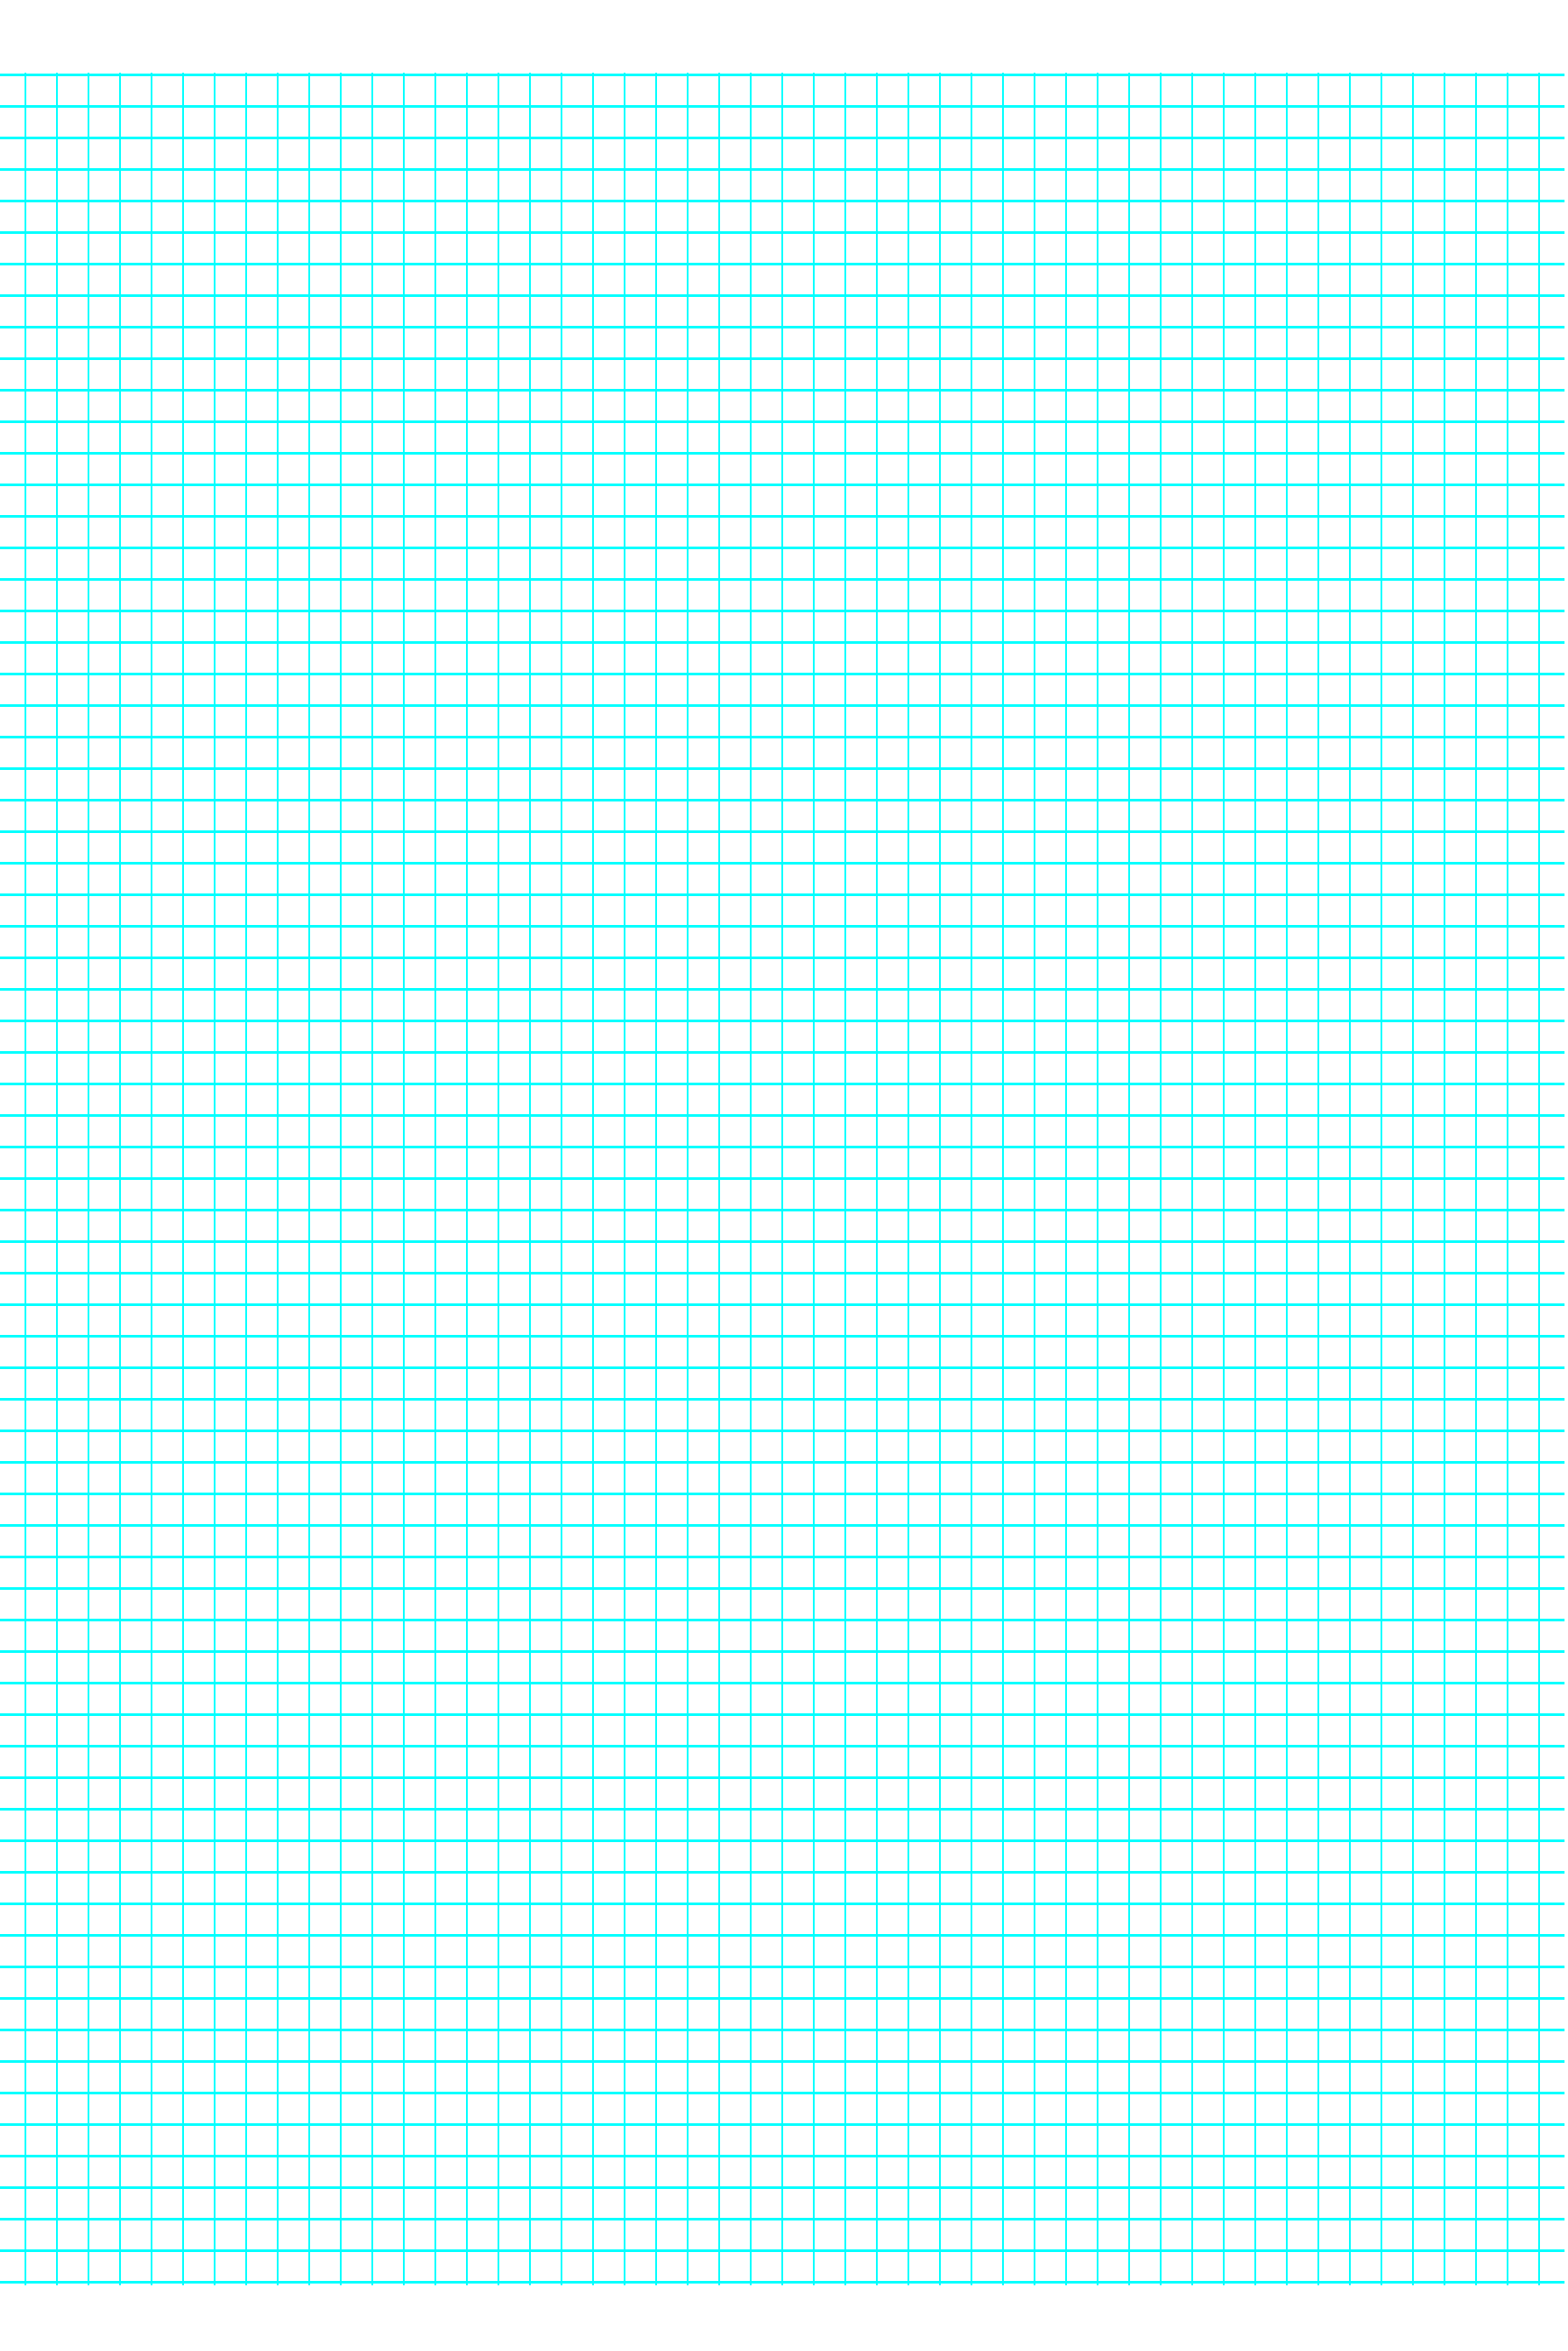 6 Lines Per Inch Graph Paper On A4 Sized Paper Free Download